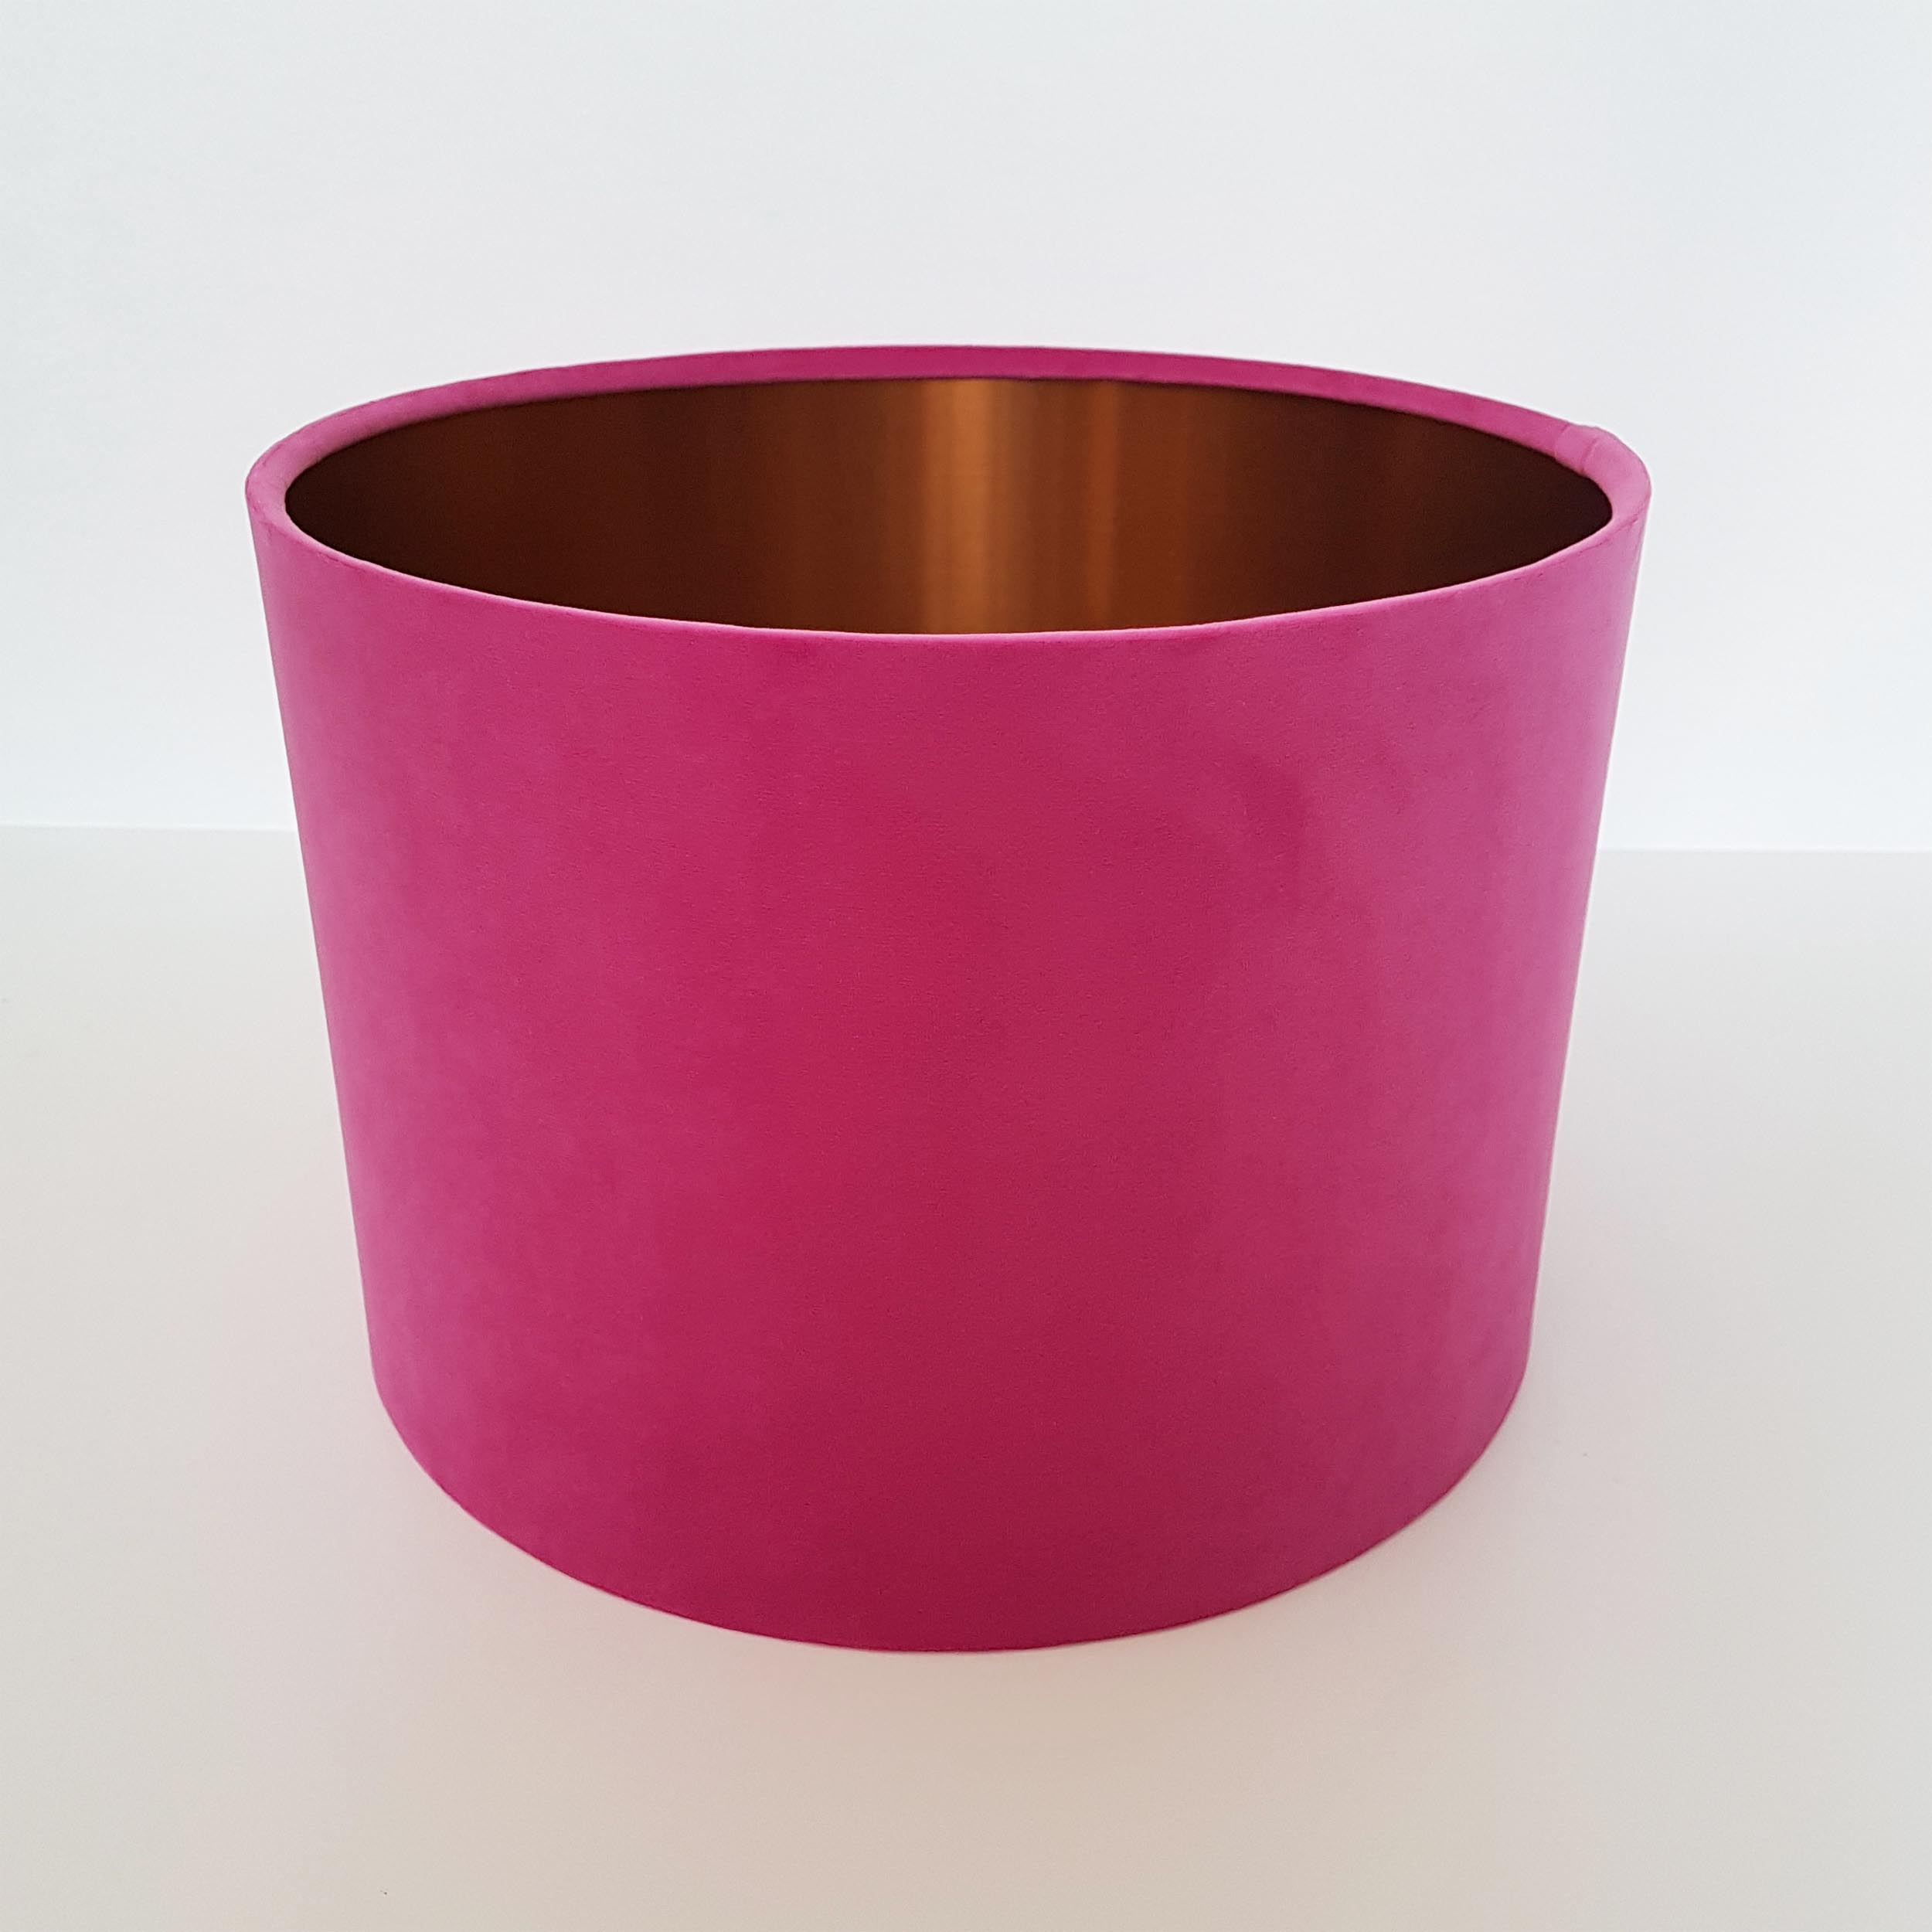 Hot Pink Velvet Lampshade with Brushed Copper